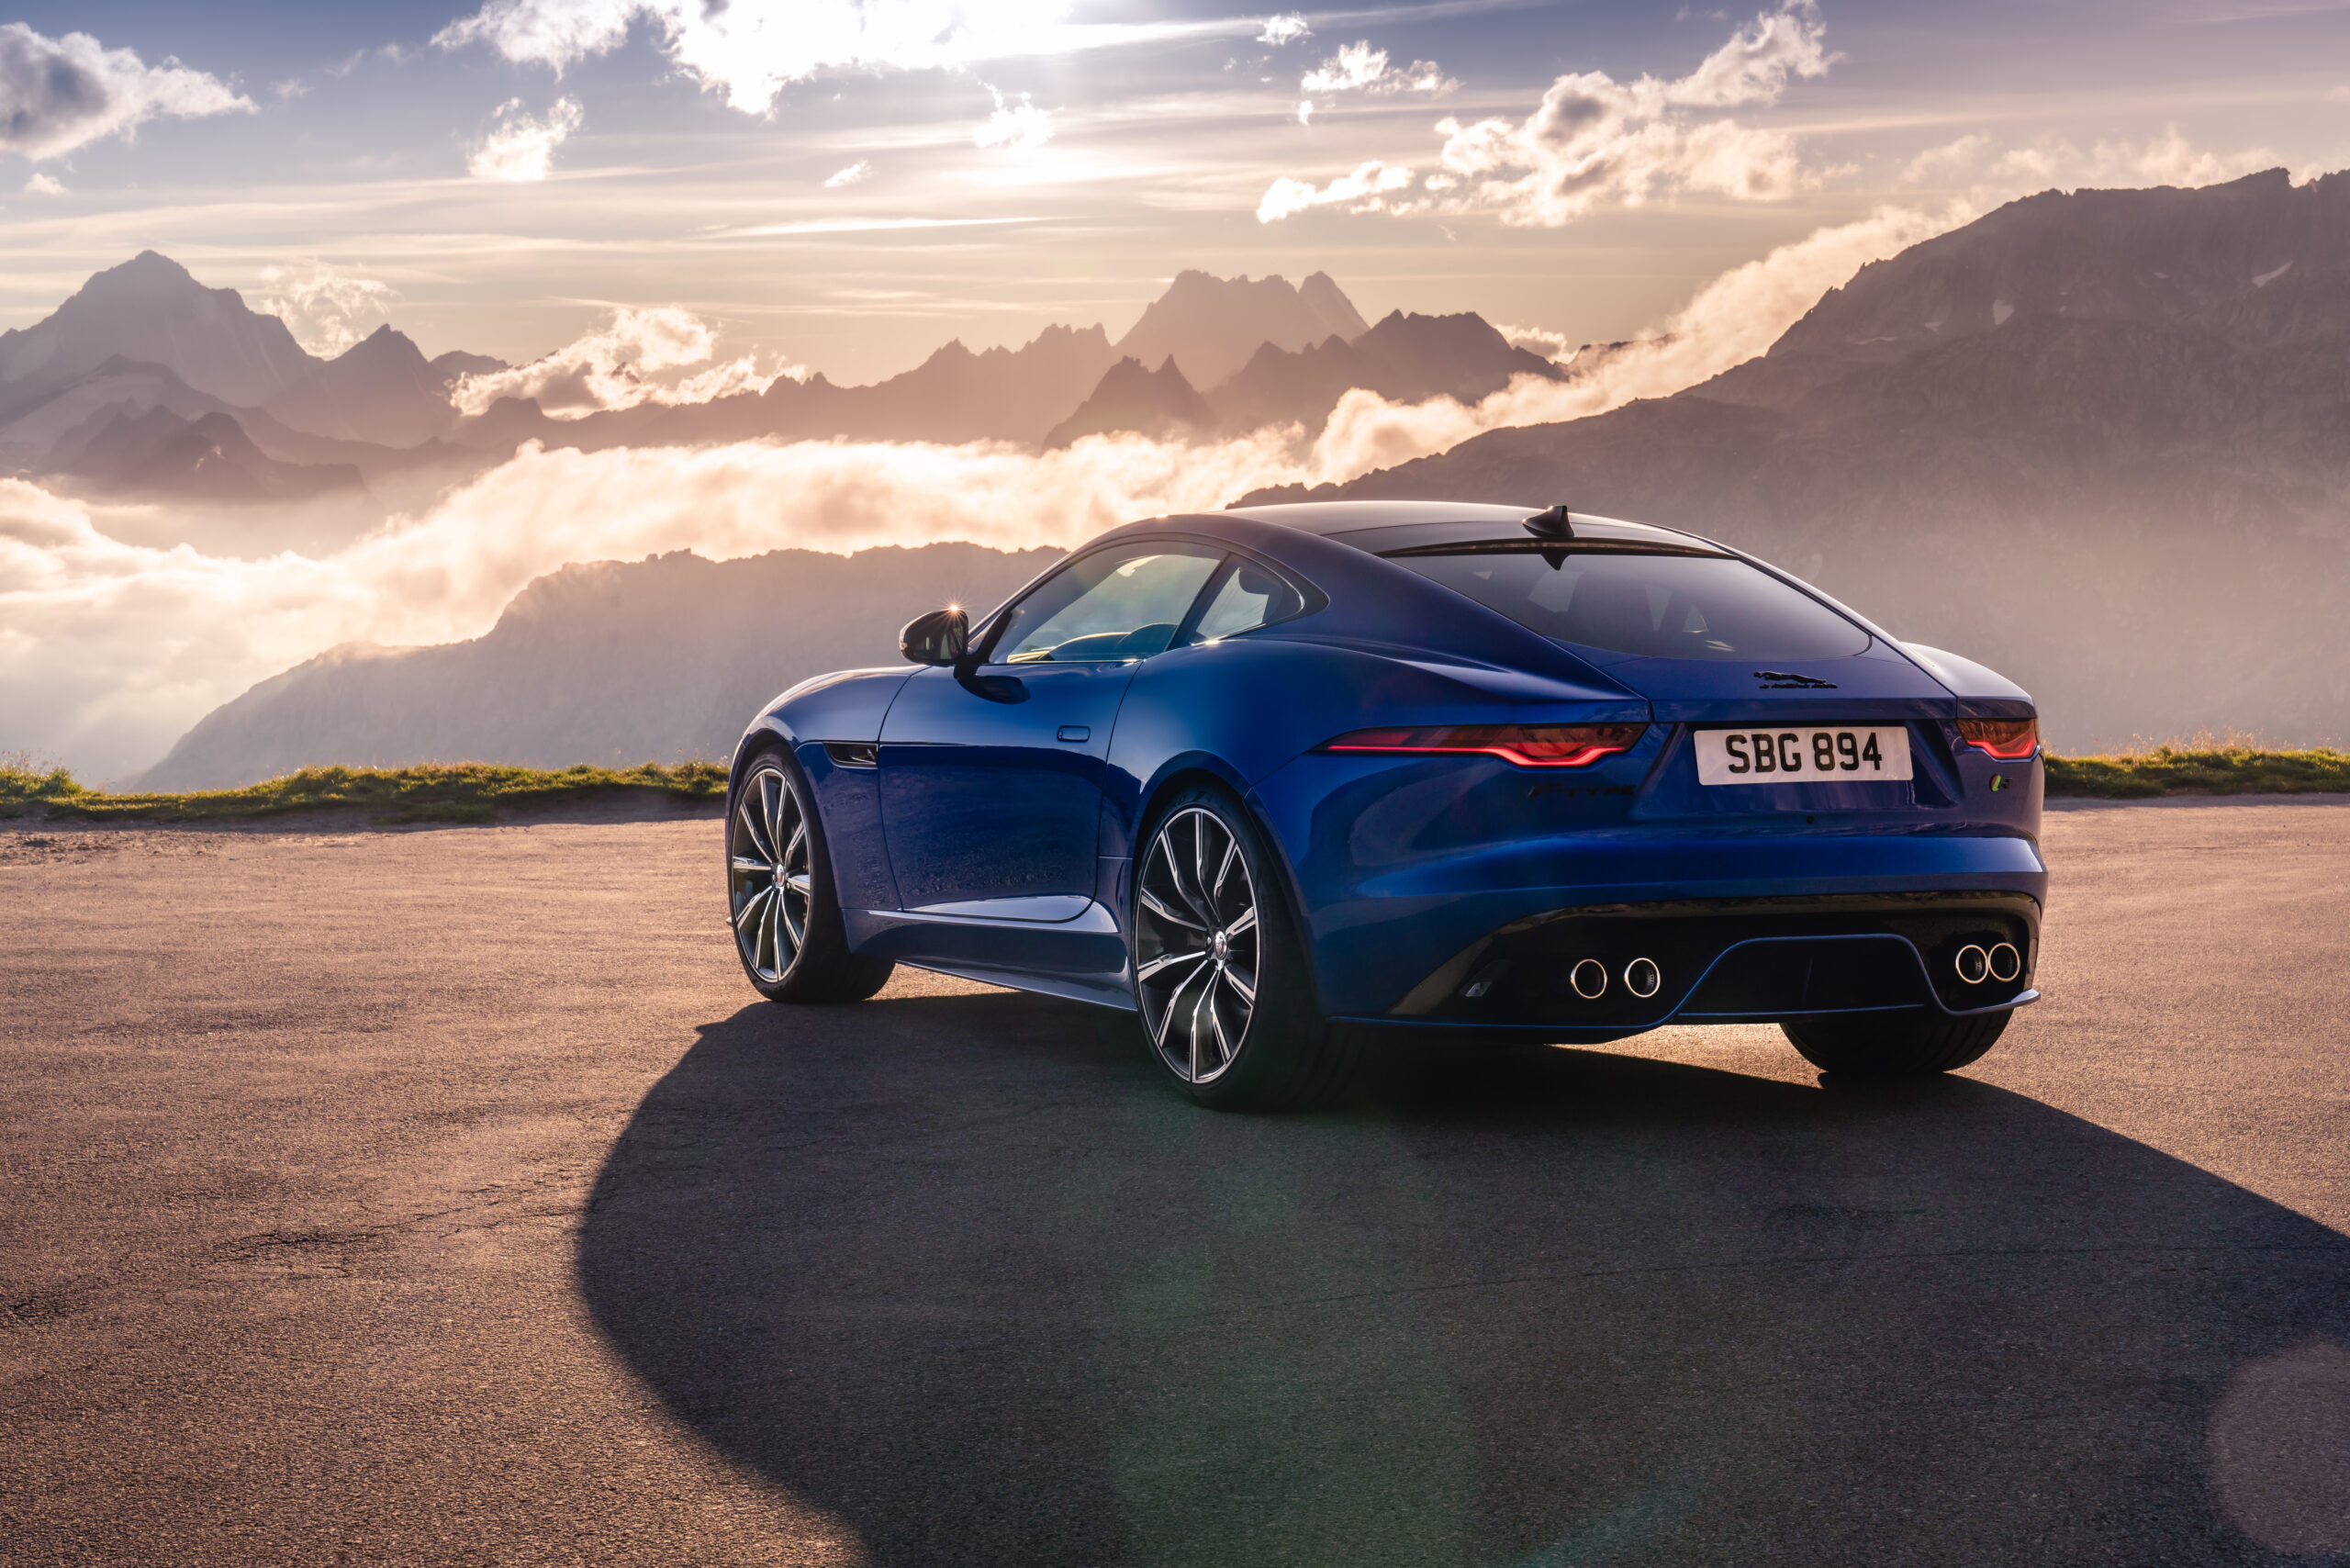 Jaguar's new F-Type reviewed: 'Everything a GT should be'